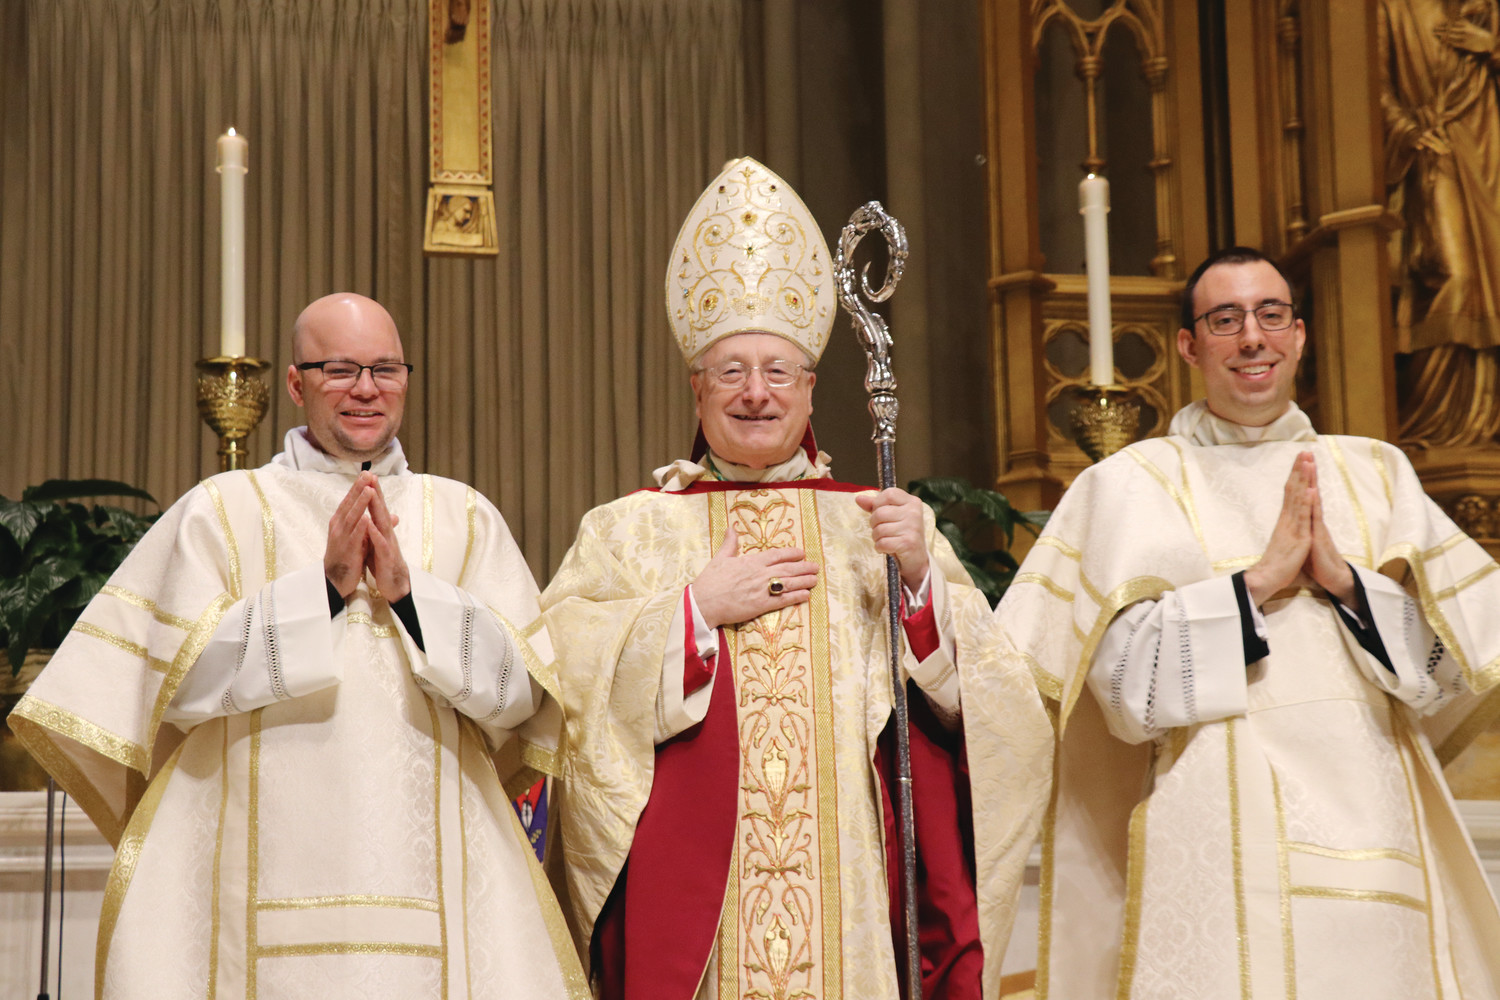 Father Rowley, Bishop Evans and Father Silva at Ordination to the Diaconate, May 2018.